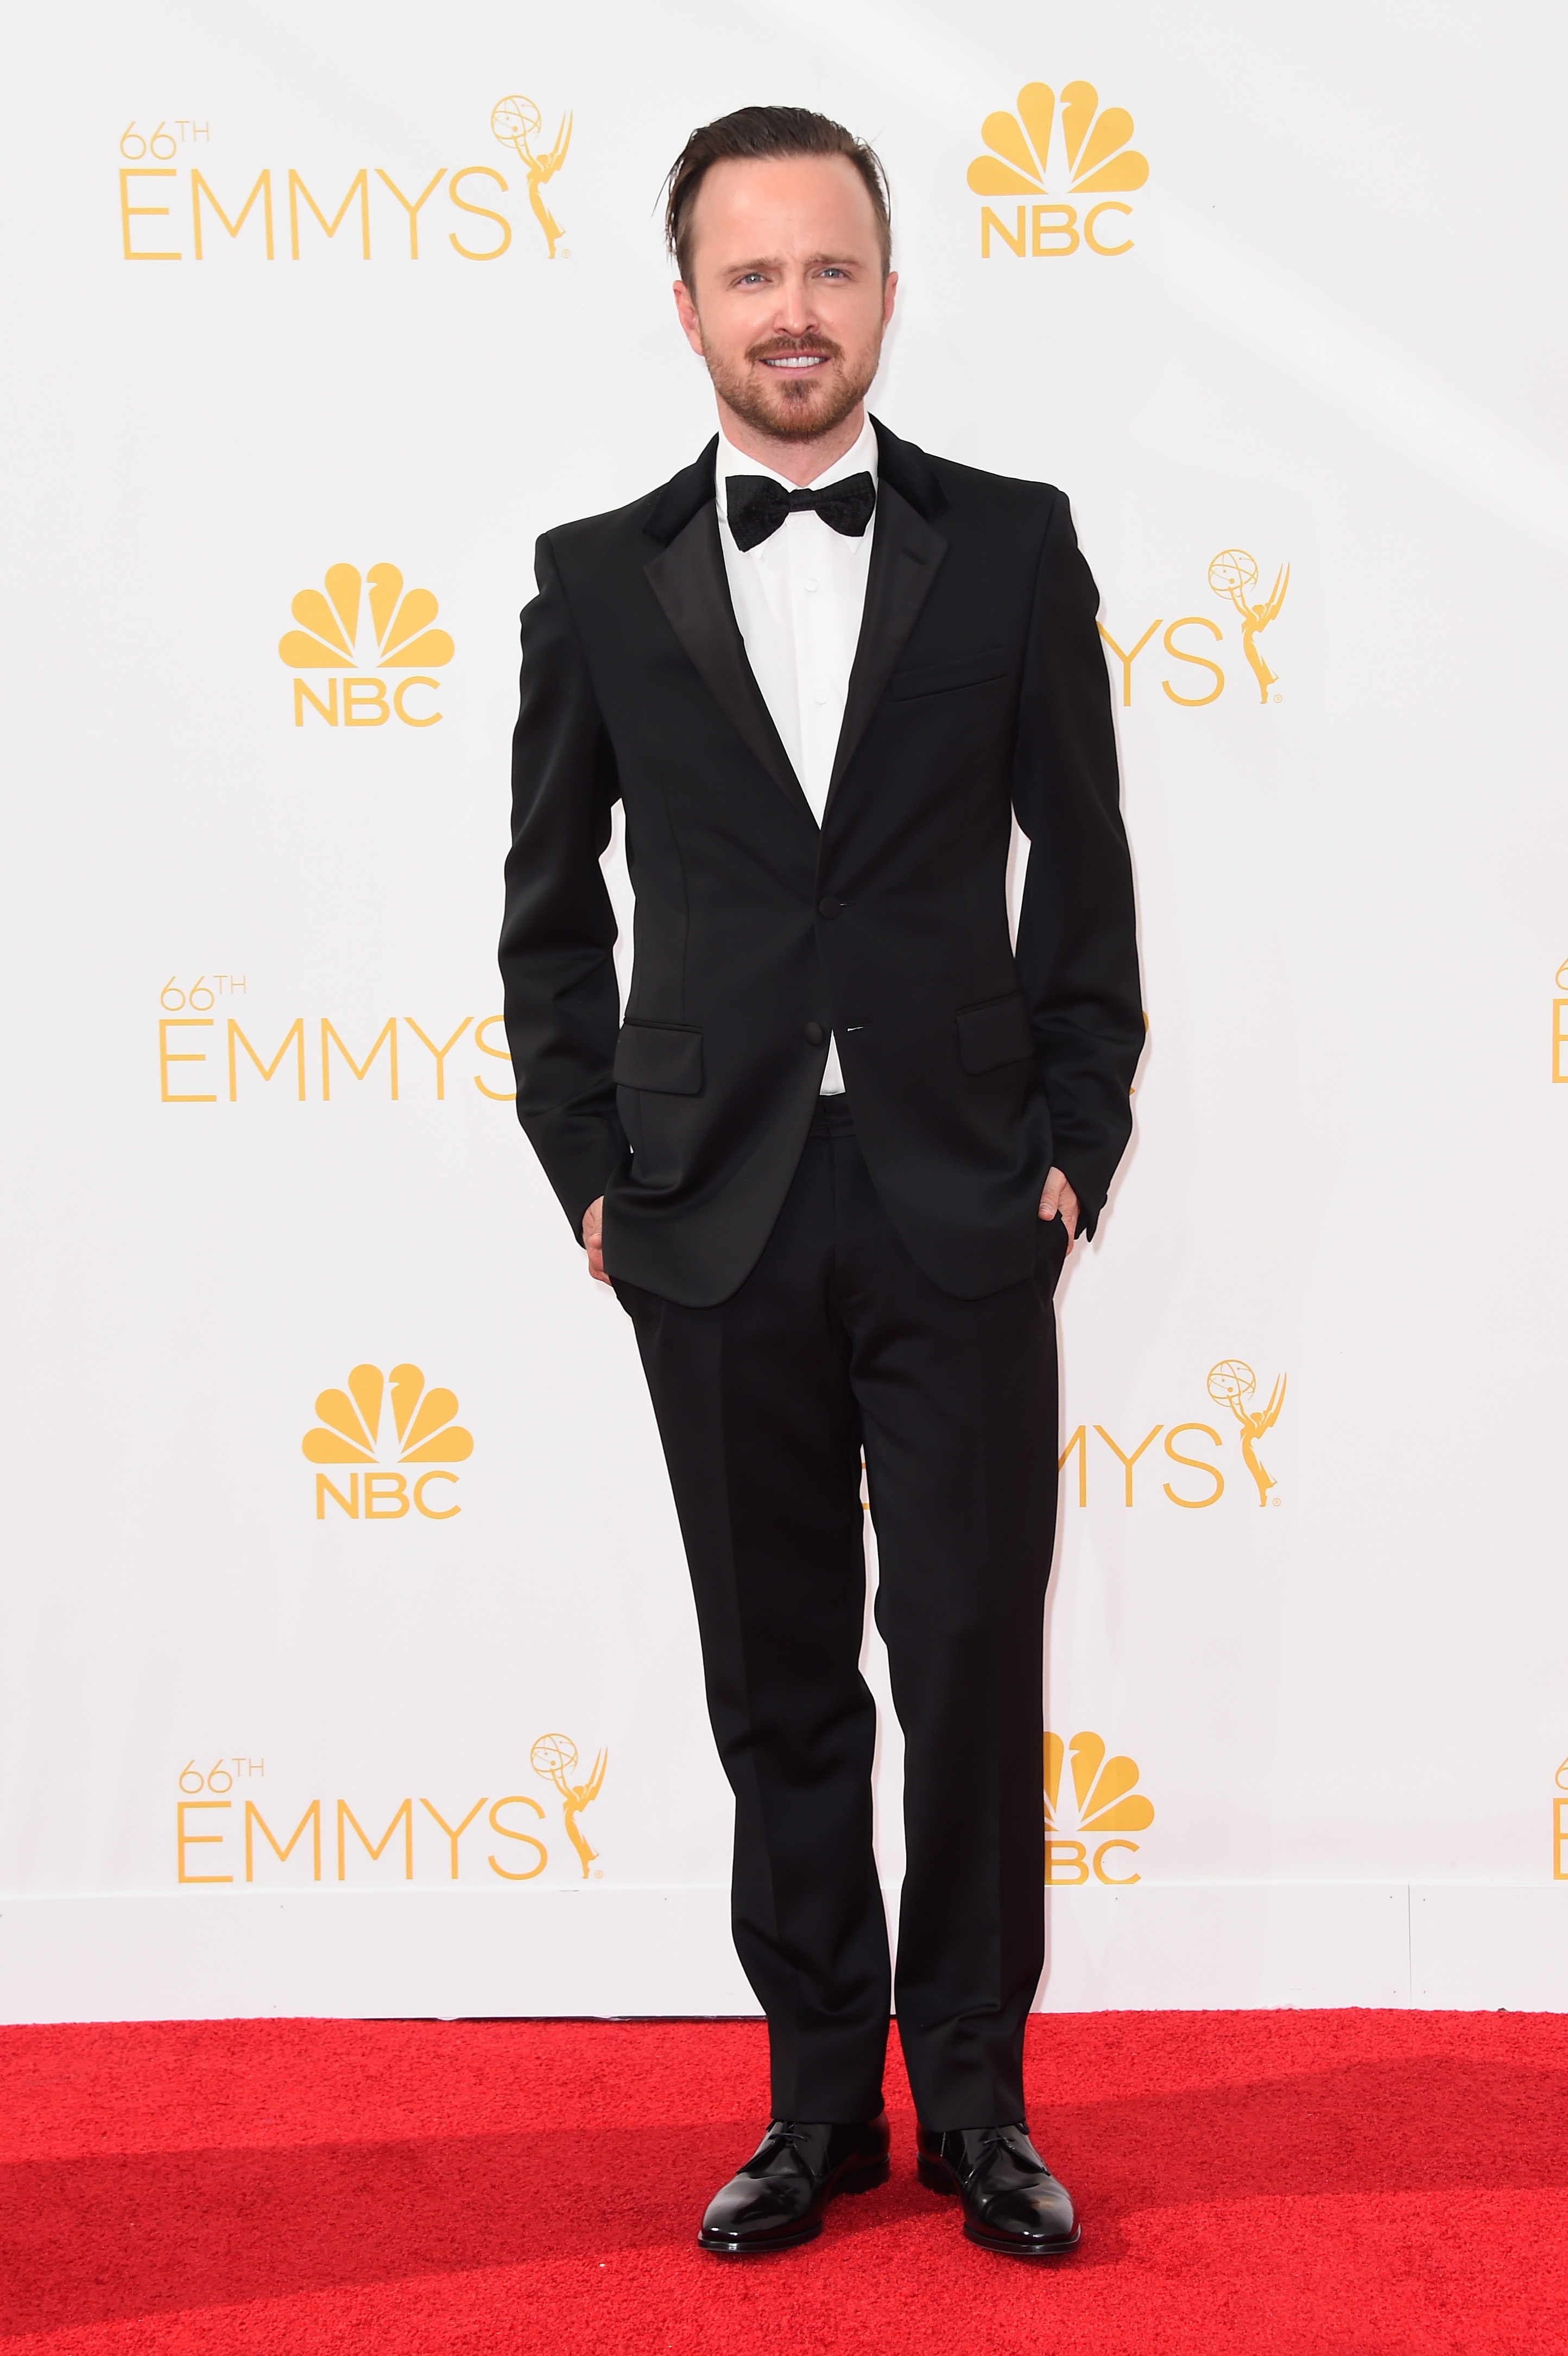 Top 10 smoking hot Emmy Awards red carpet looks [GALLERY]